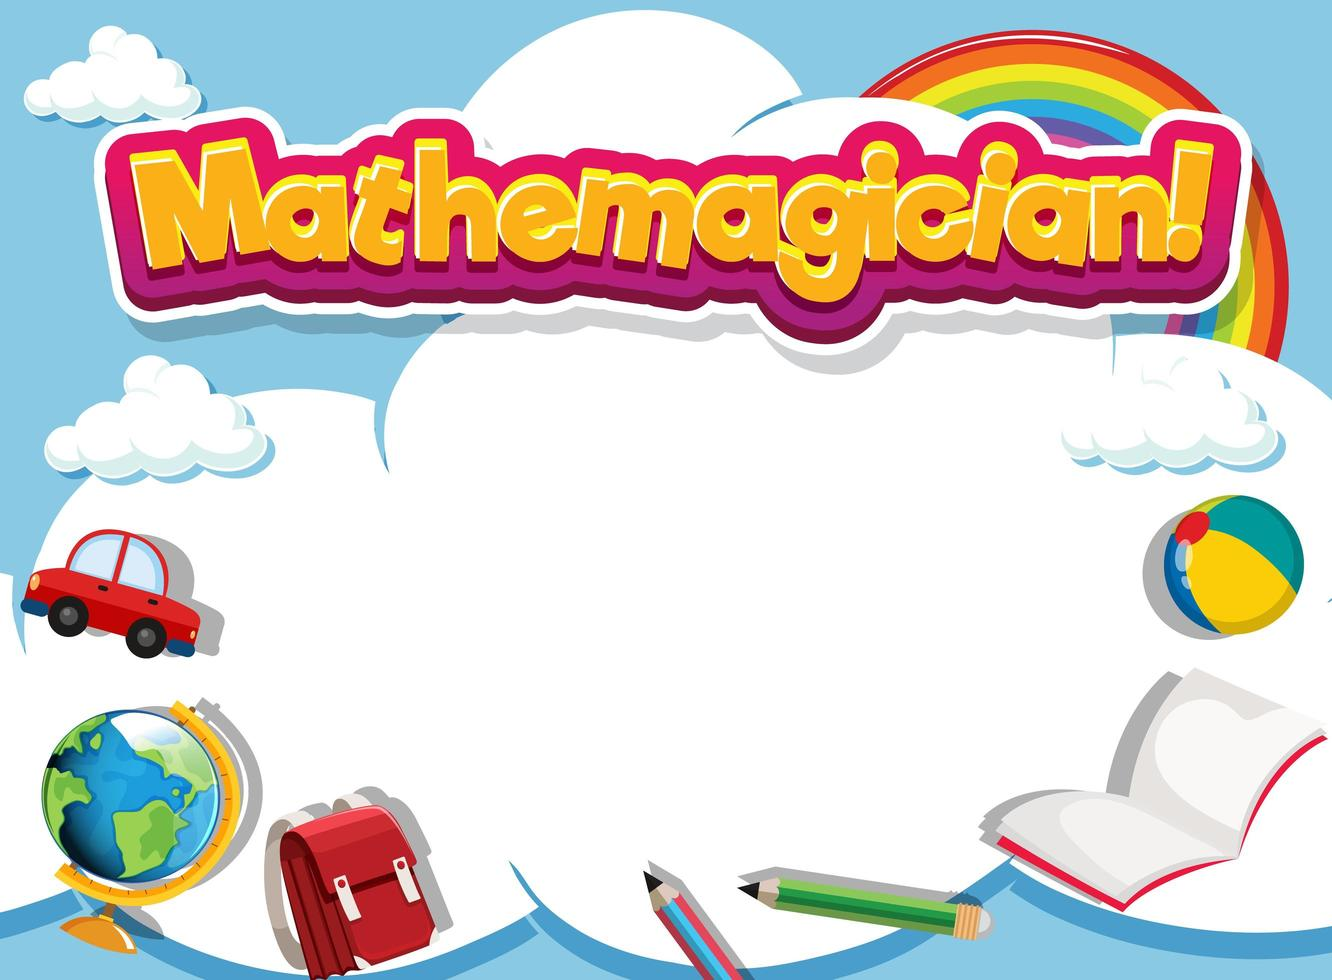 educatieve kadersjabloon met woord mathemagicain vector